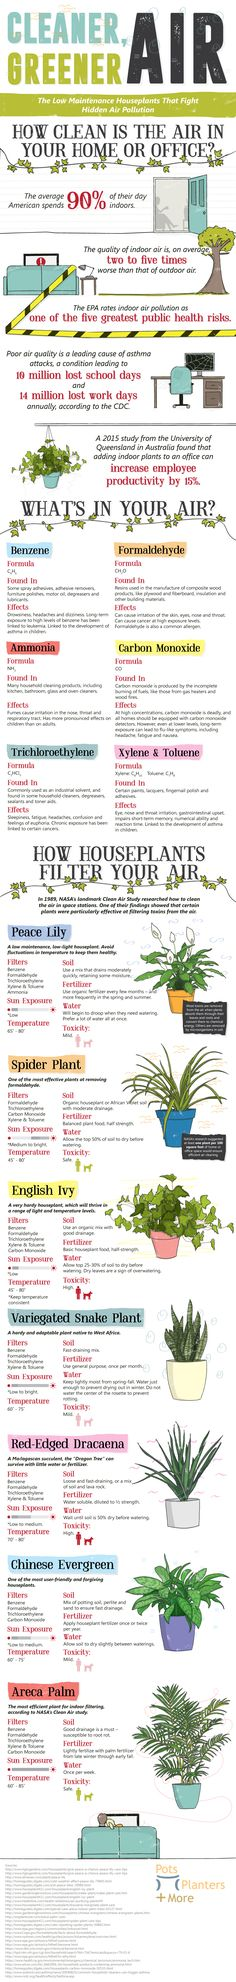 Low Maintenance Houseplants That Fight Hidden Air Pollution If you want low-maintenance plants that will improve your air quality, take a look at these options! Cool Plants, Air Plants, Indoor Plants, Green Plants, Potted Plants, Air Cleaning Plants, Low Maintenance Plants, Environmental Health, Heating And Air Conditioning